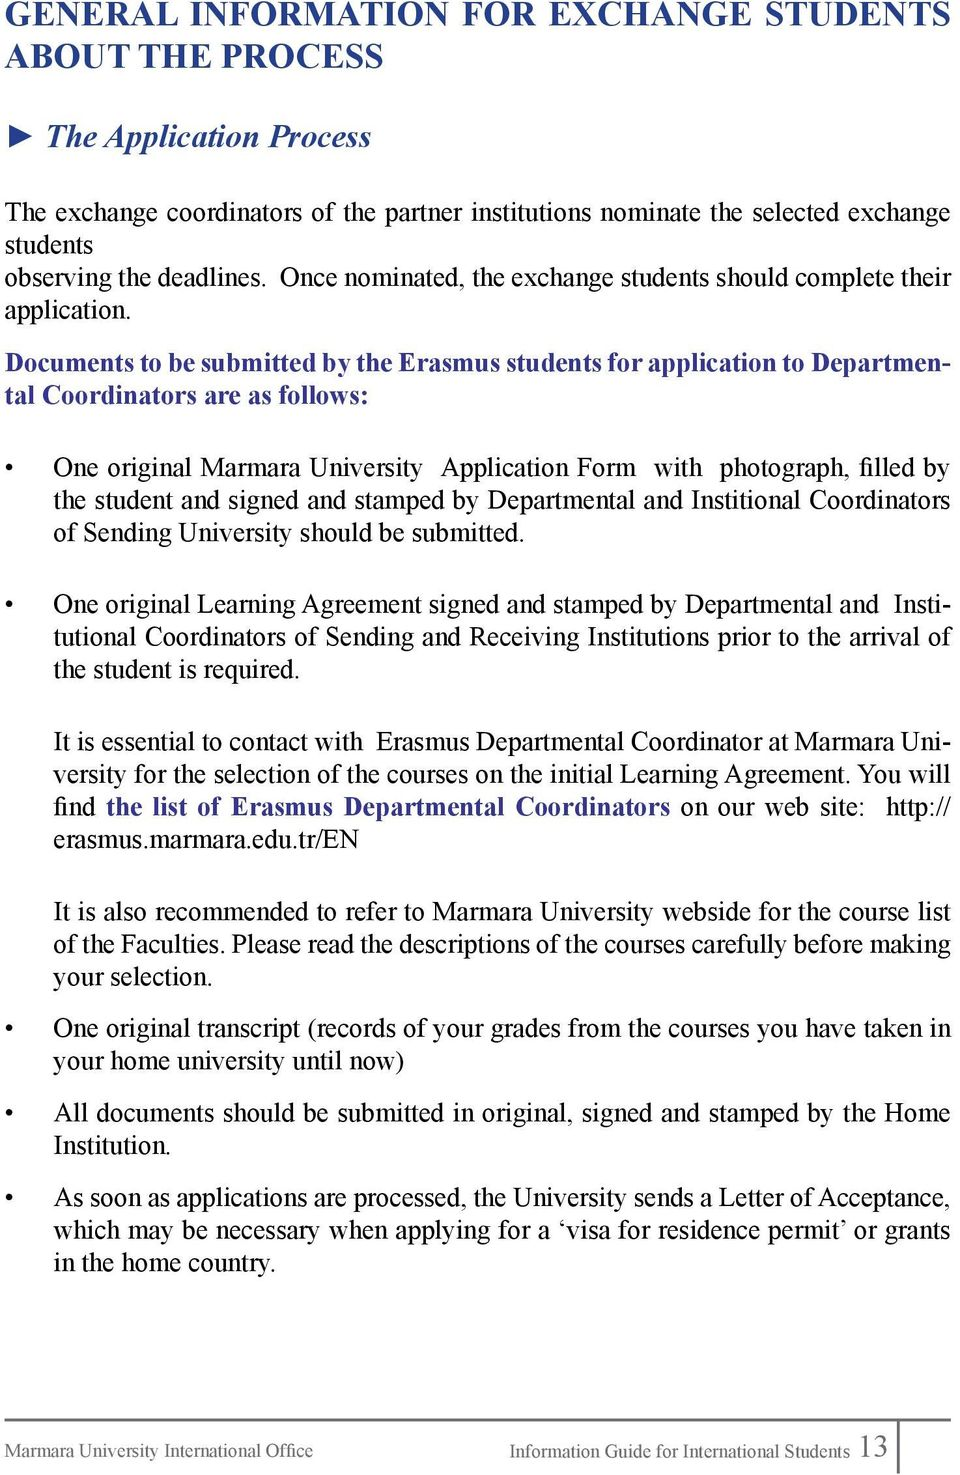 Documents to be submitted by the Erasmus students for application to Departmental Coordinators are as follows: One original Marmara University Application Form with photograph, filled by the student